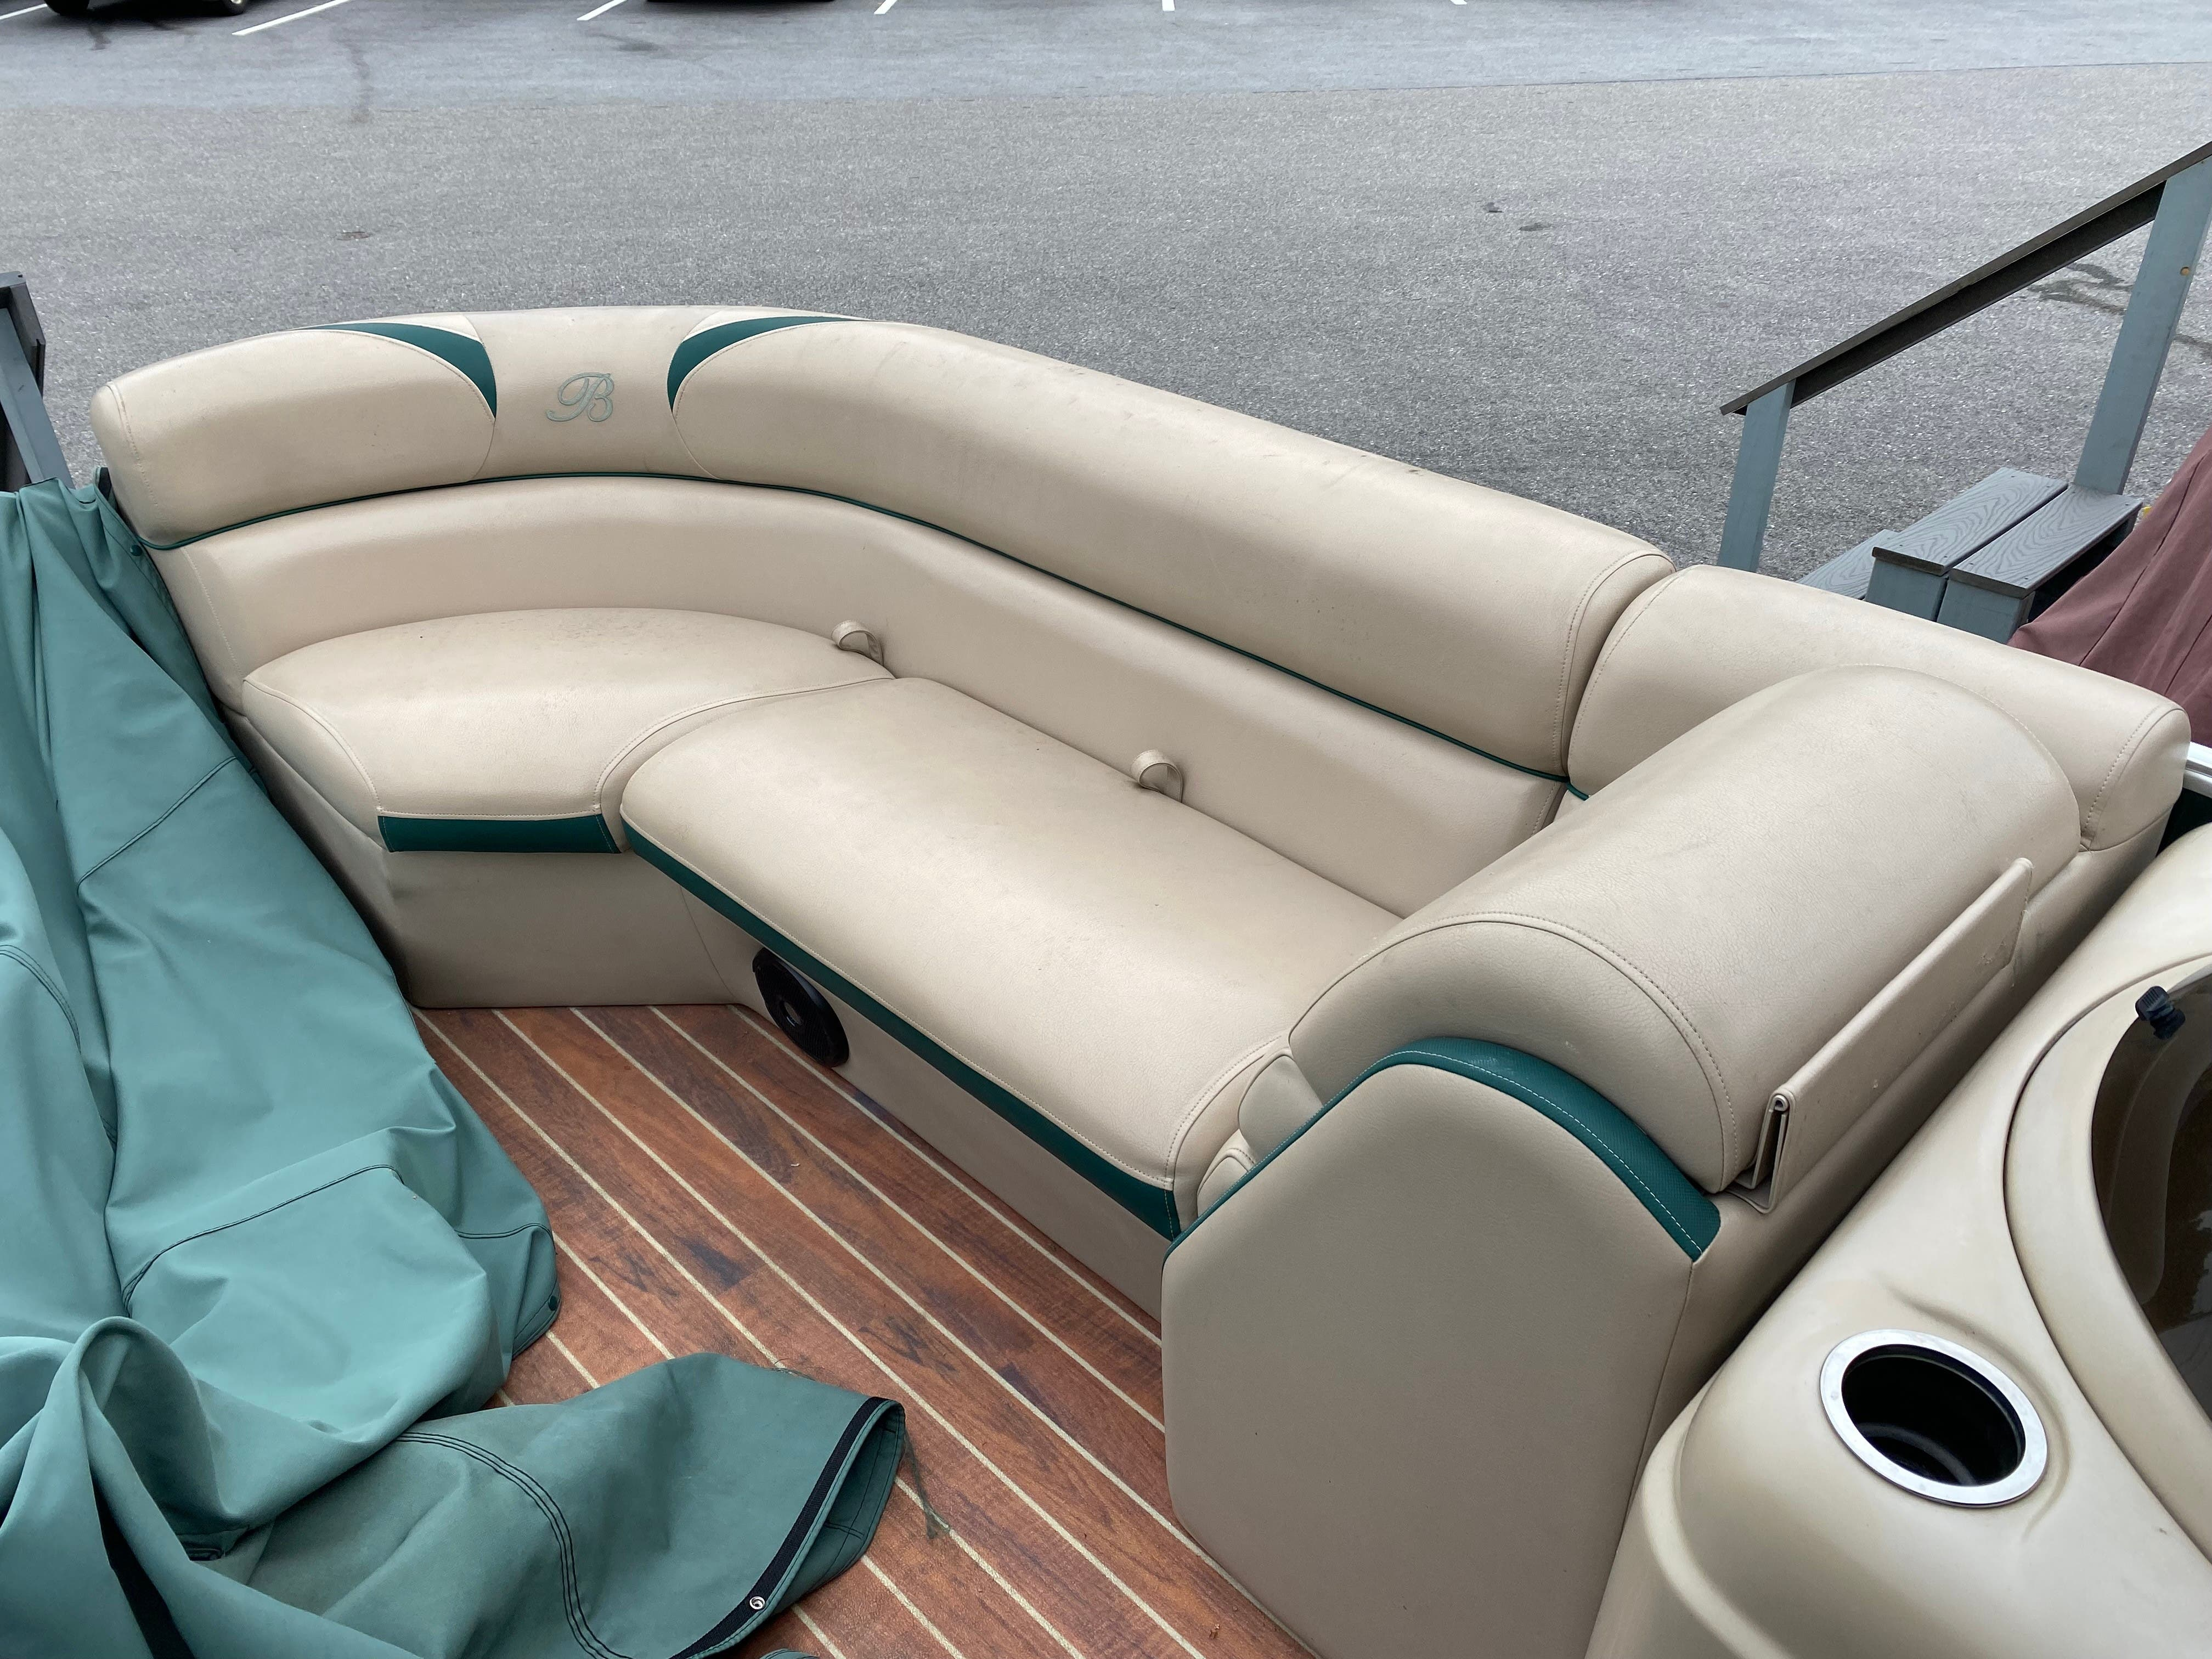 2014 Berkshire Pontoons boat for sale, model of the boat is 230 CL STS & Image # 8 of 9